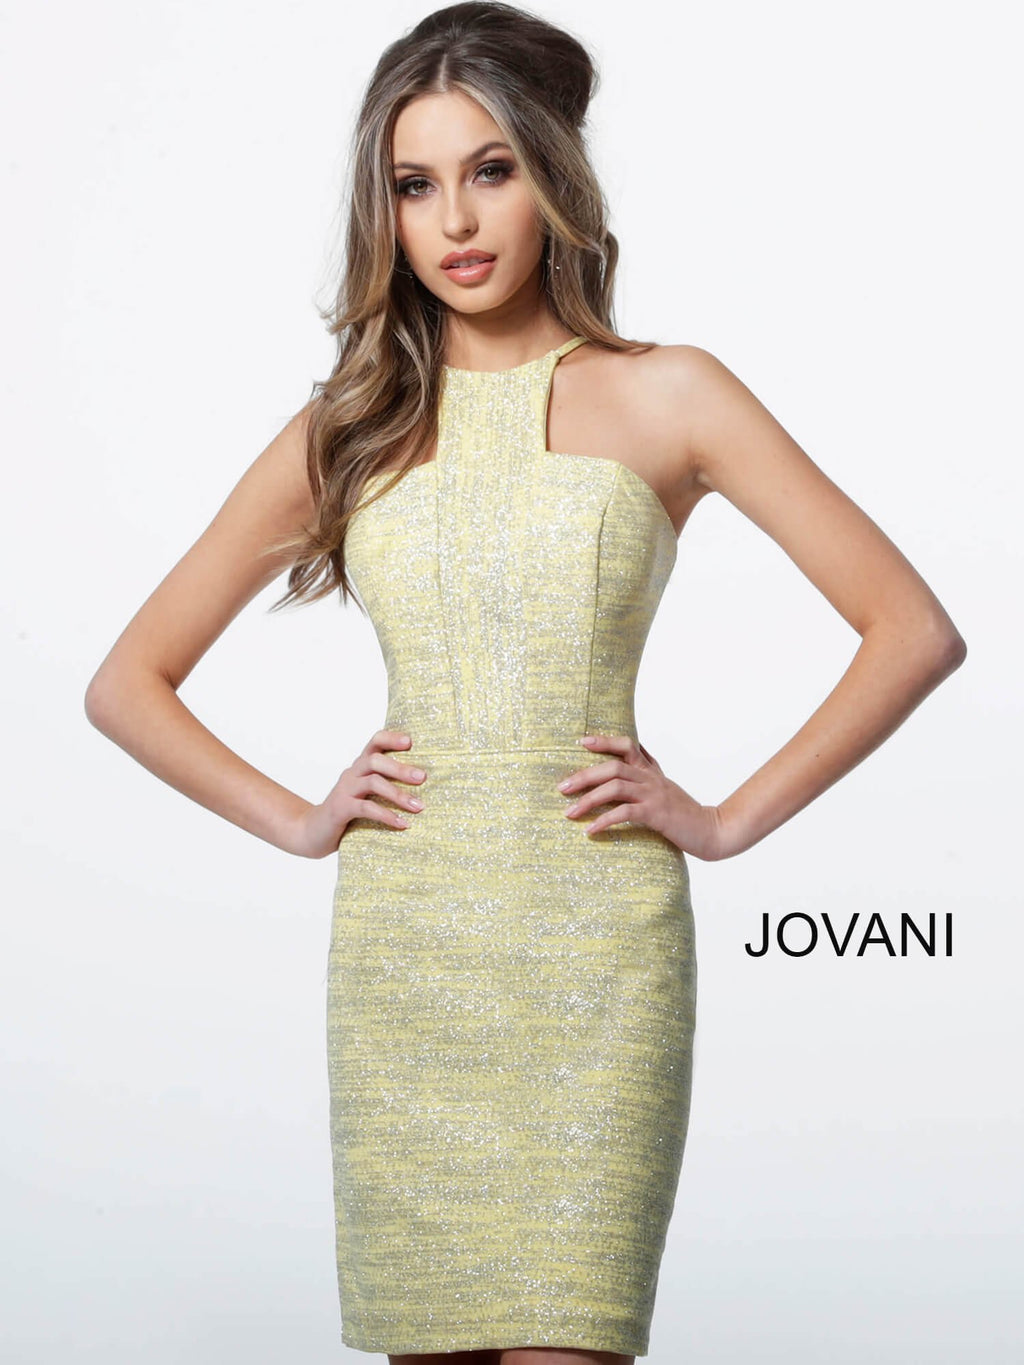 JOVANI 1558 Glitter Cocktail Dress